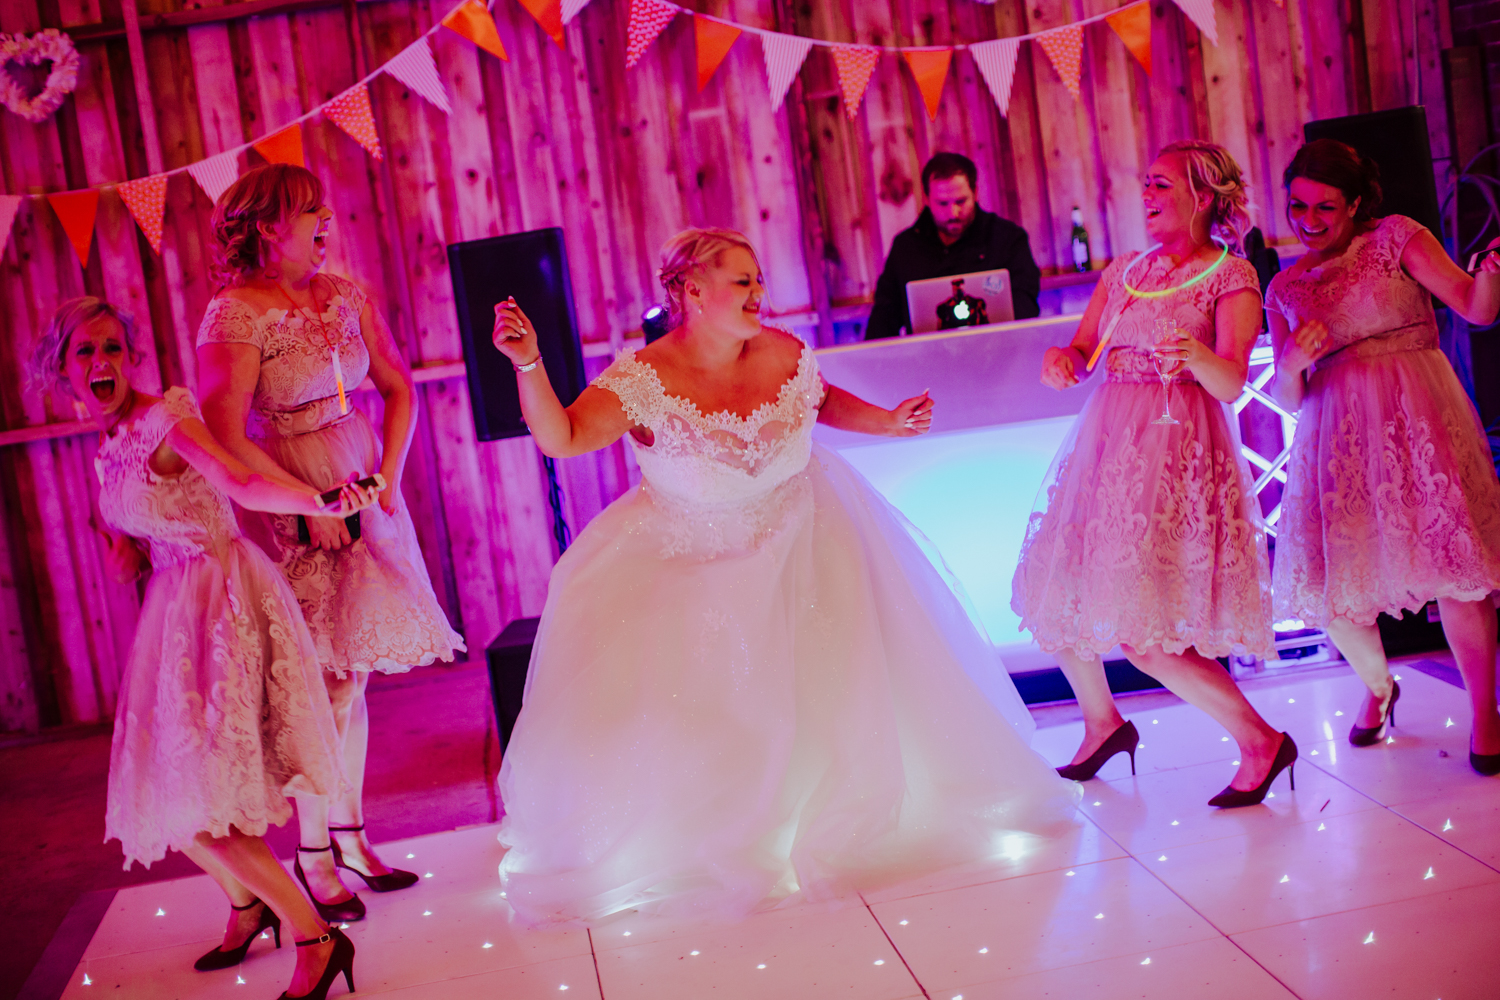 Yorkshire quirky wedding photographers sheffield-64.jpg